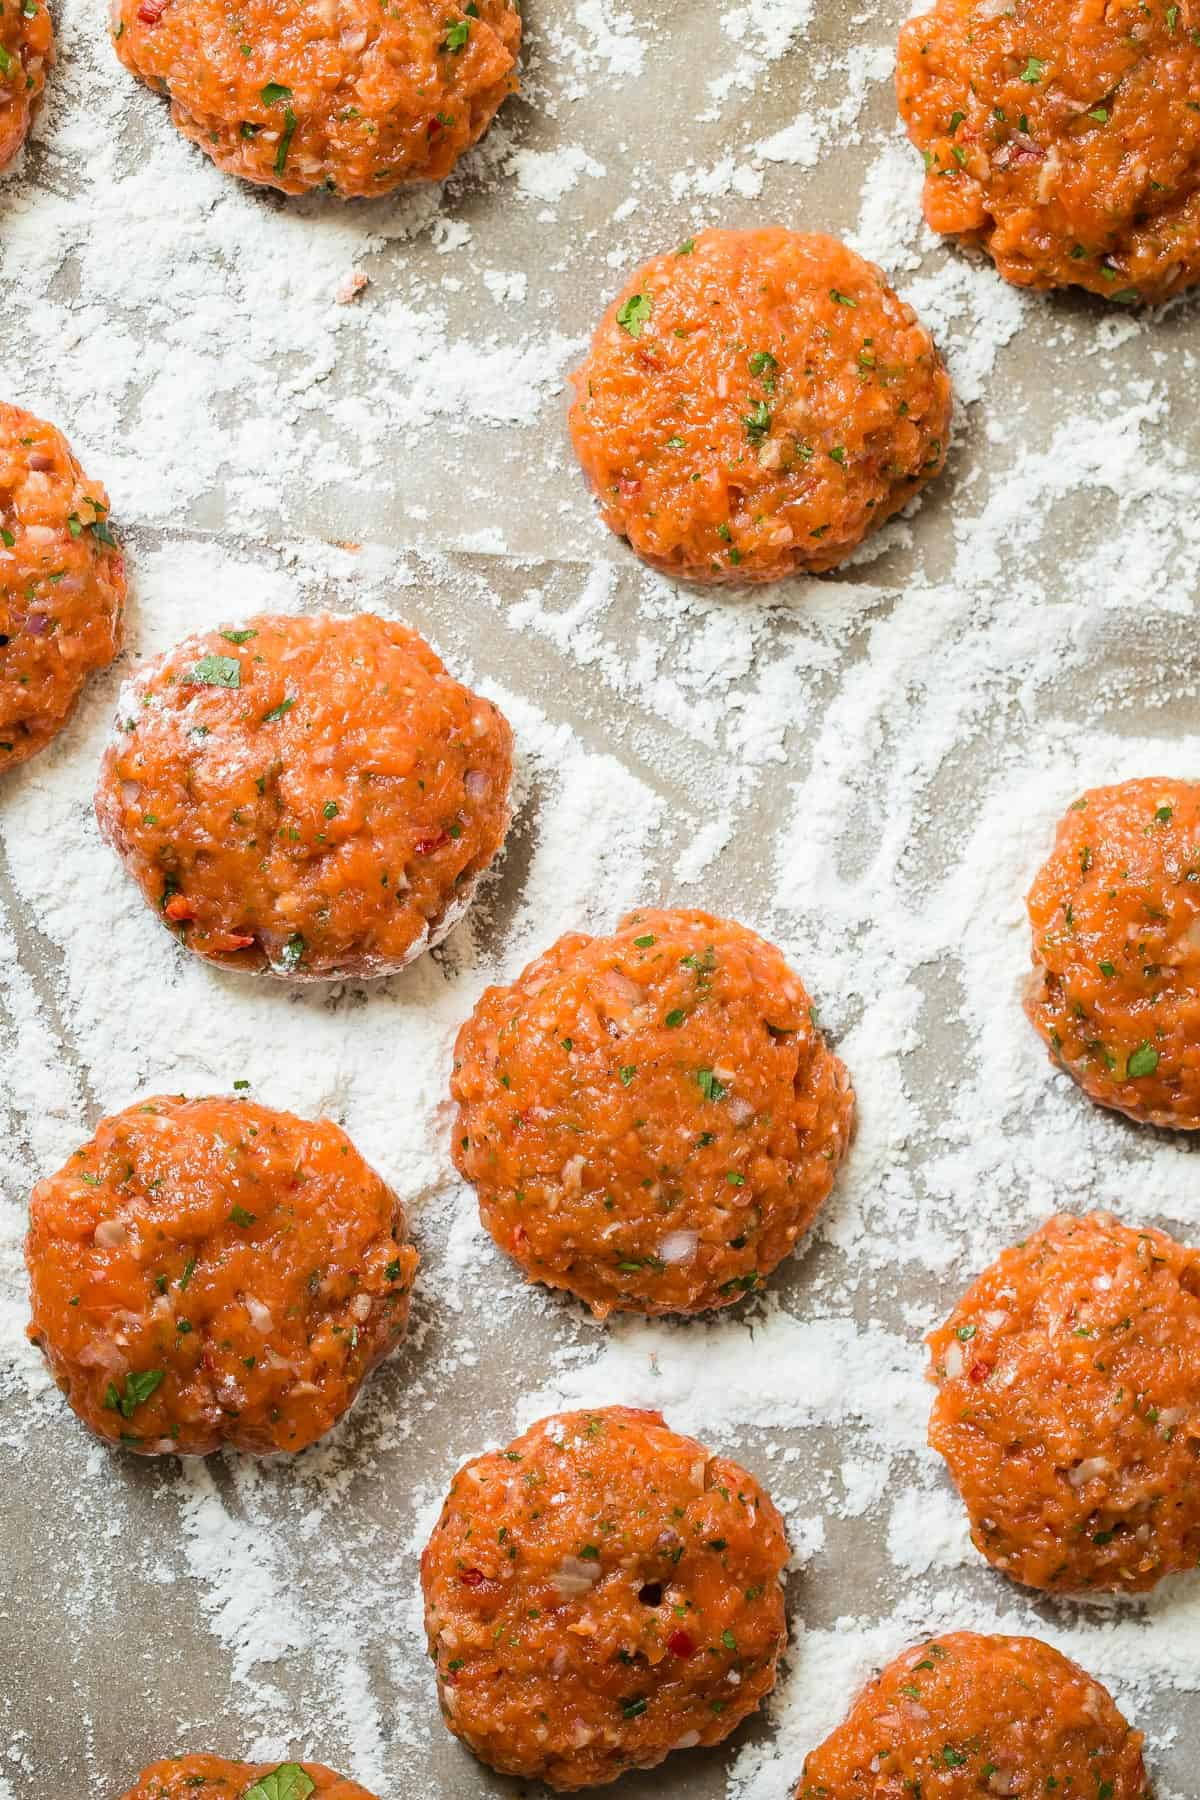 Fresh Alaskan Sockeye Salmon patties with a Thai influence. Make these mini patties as an appetizer or have them as mini seafood sliders! So easy to make!